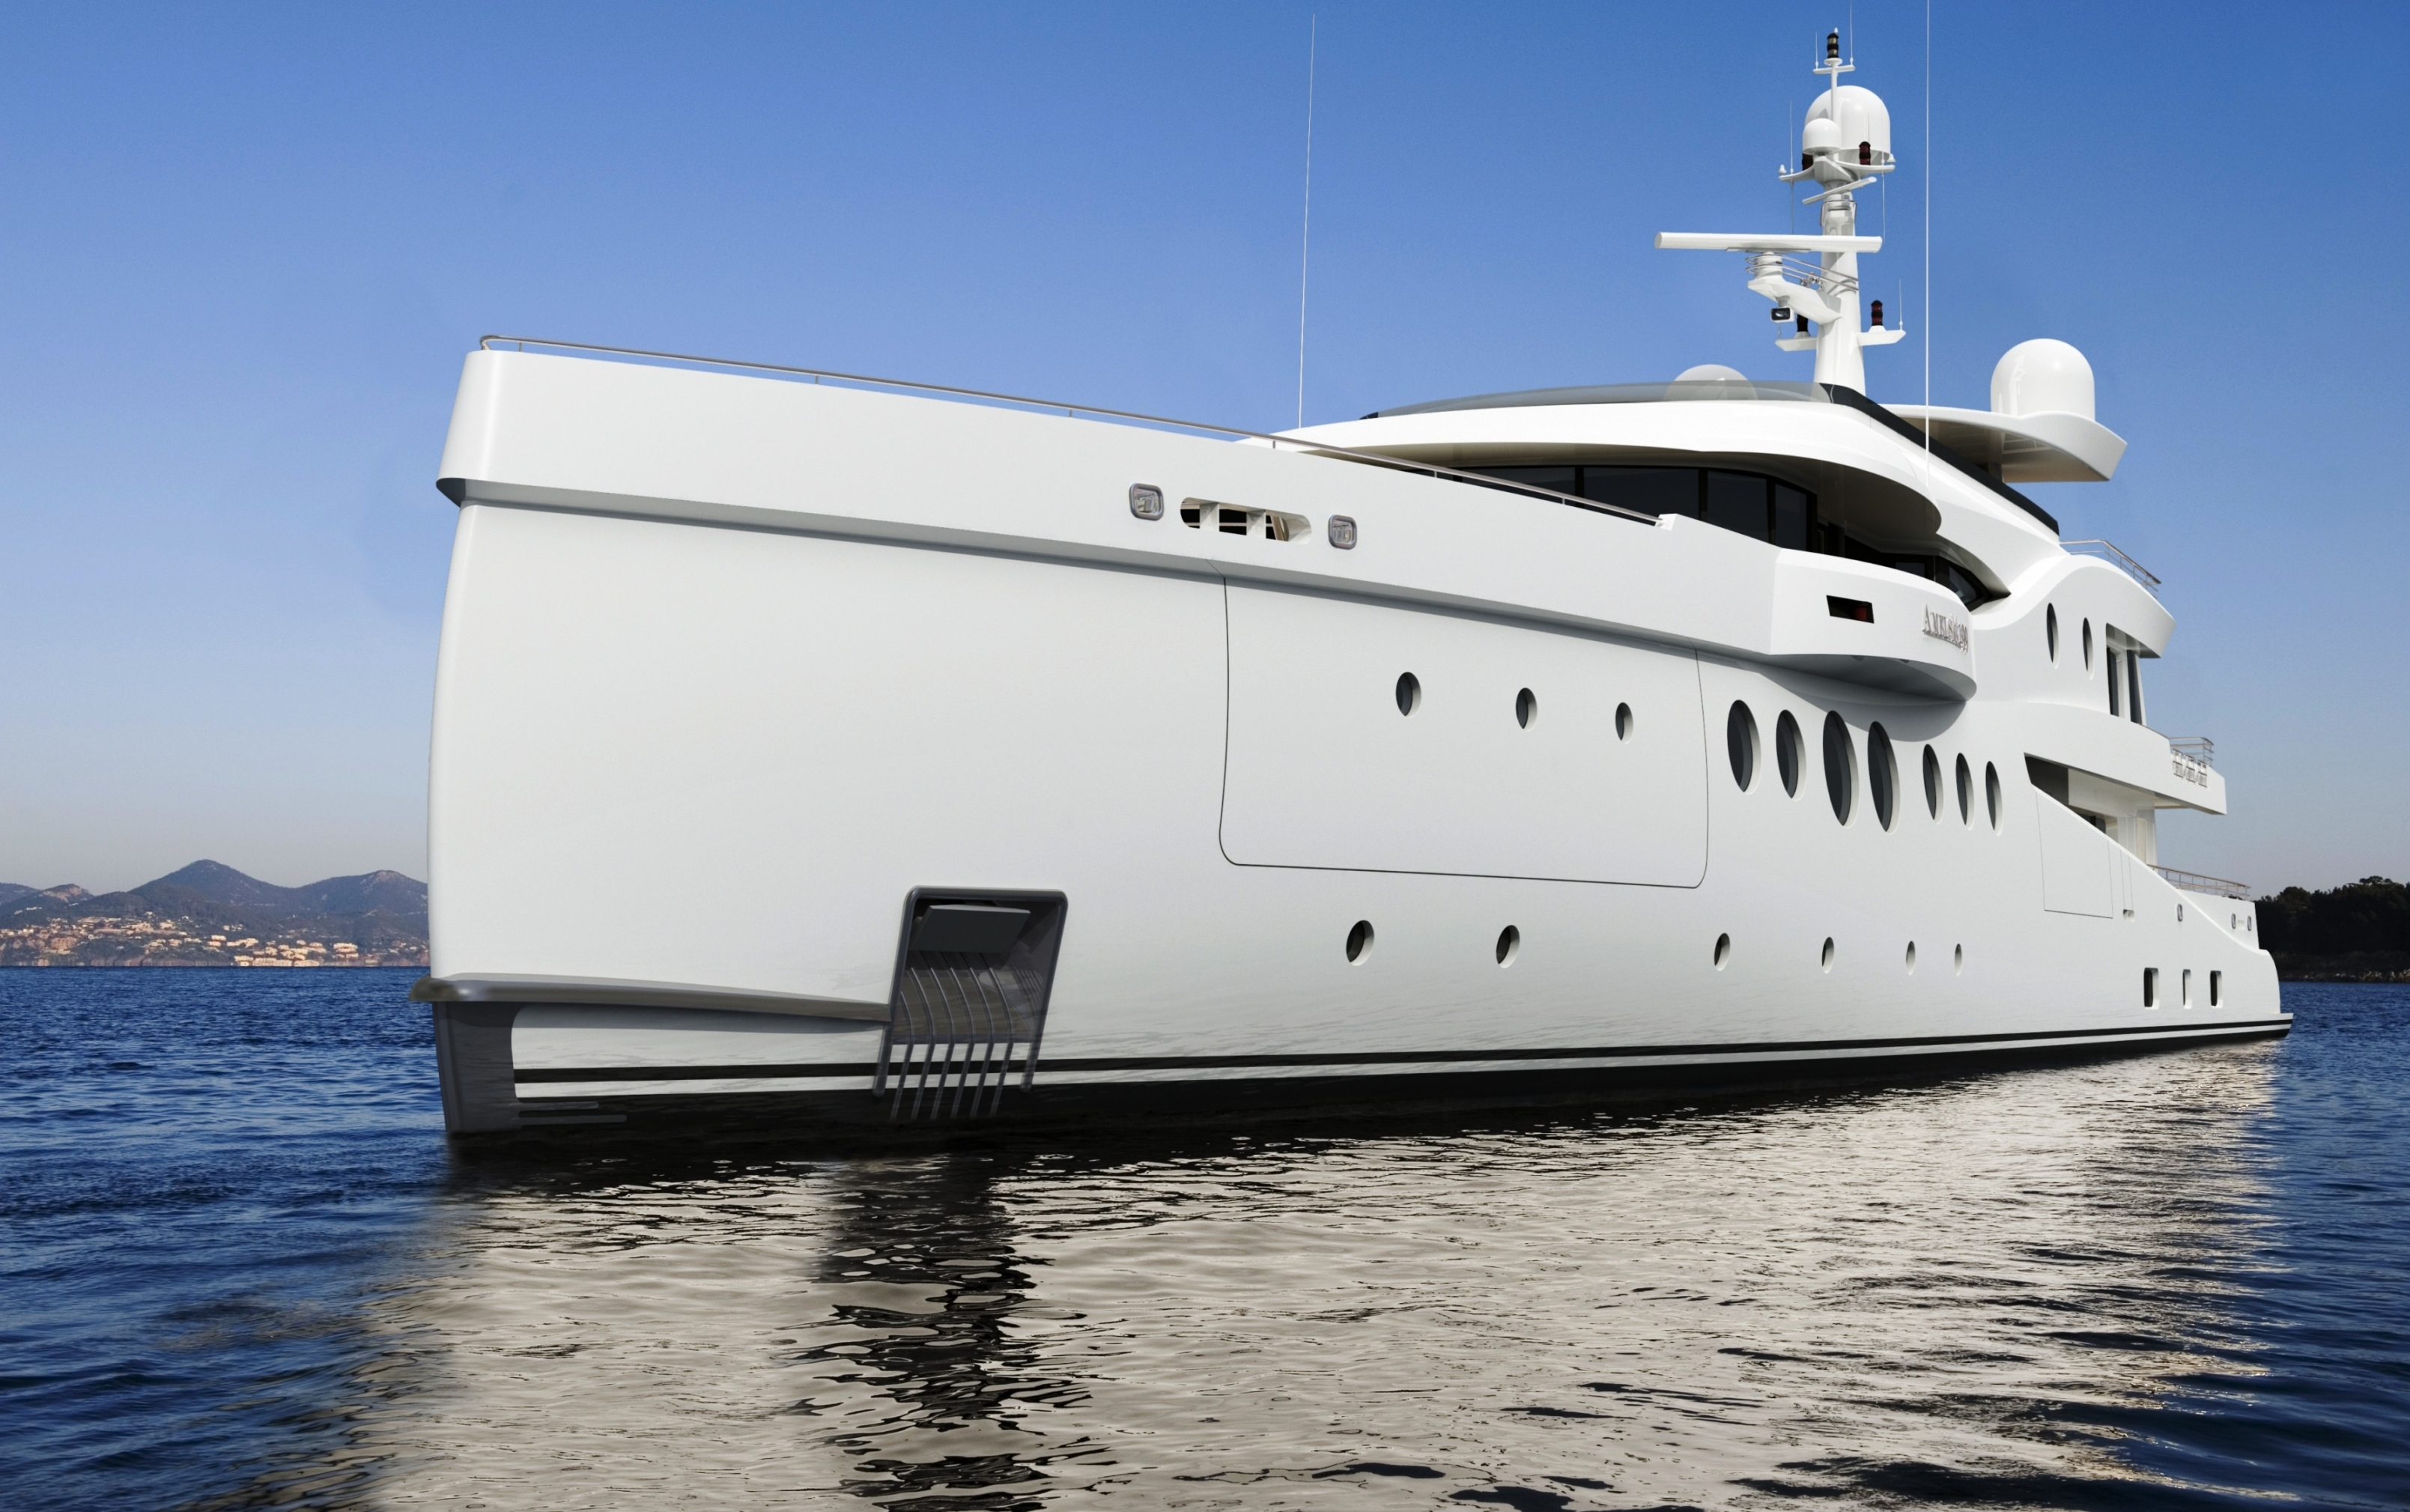 The Amels 199 Motor Yacht